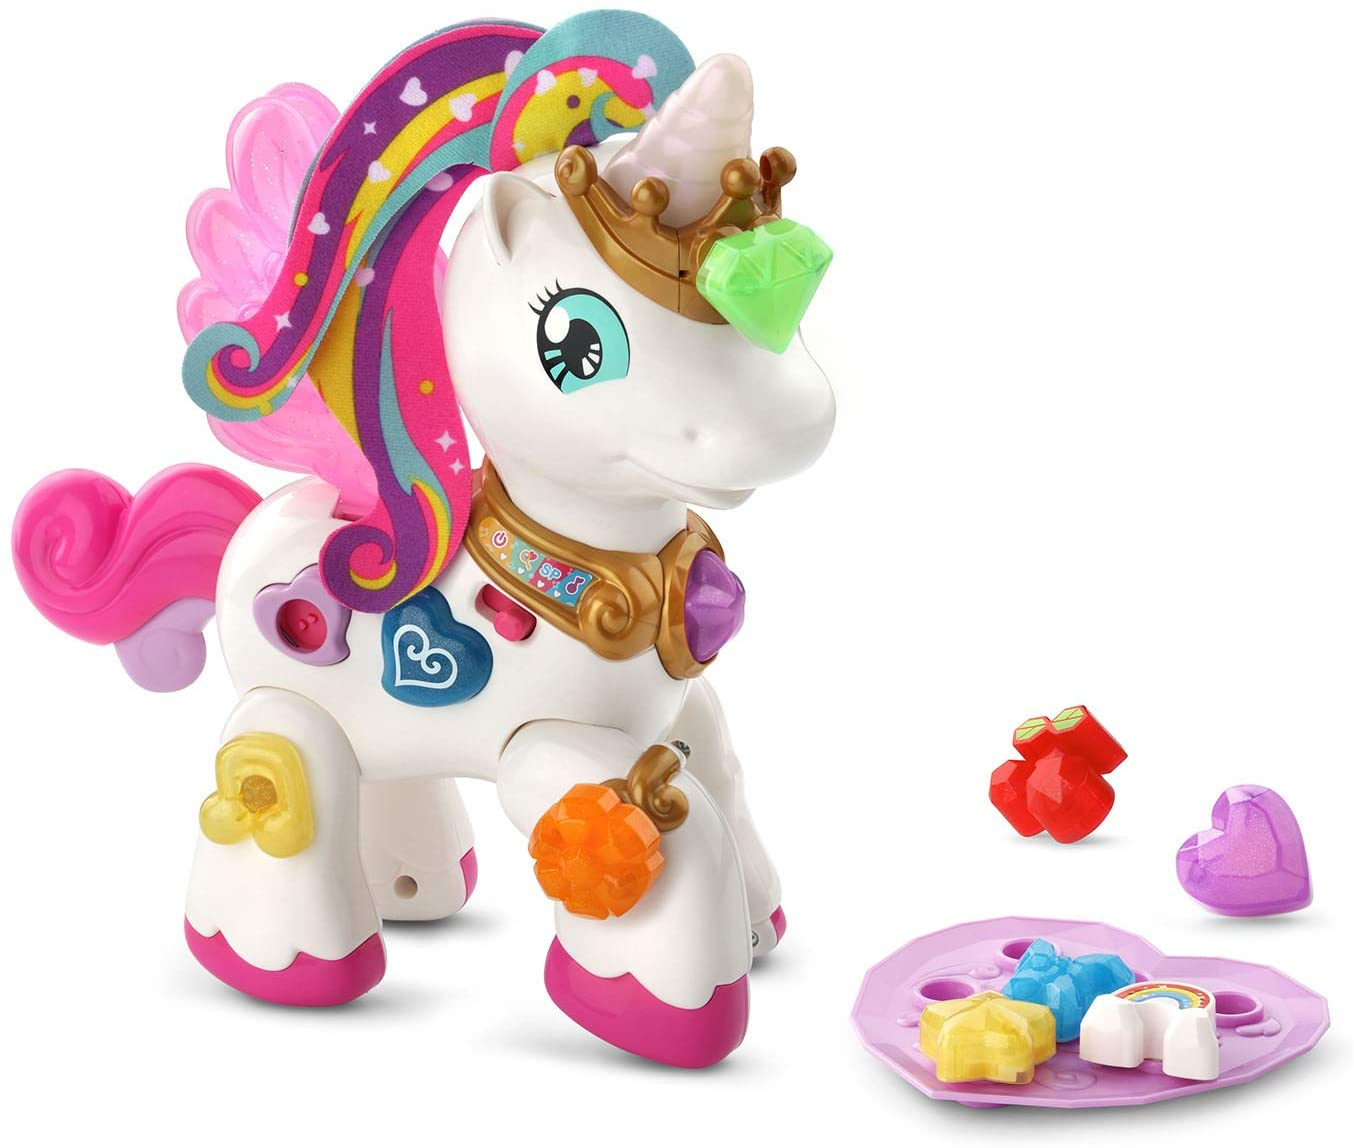 50+ Best Gift Ideas & Toys for 2 Year Old Girls Should You Know 18